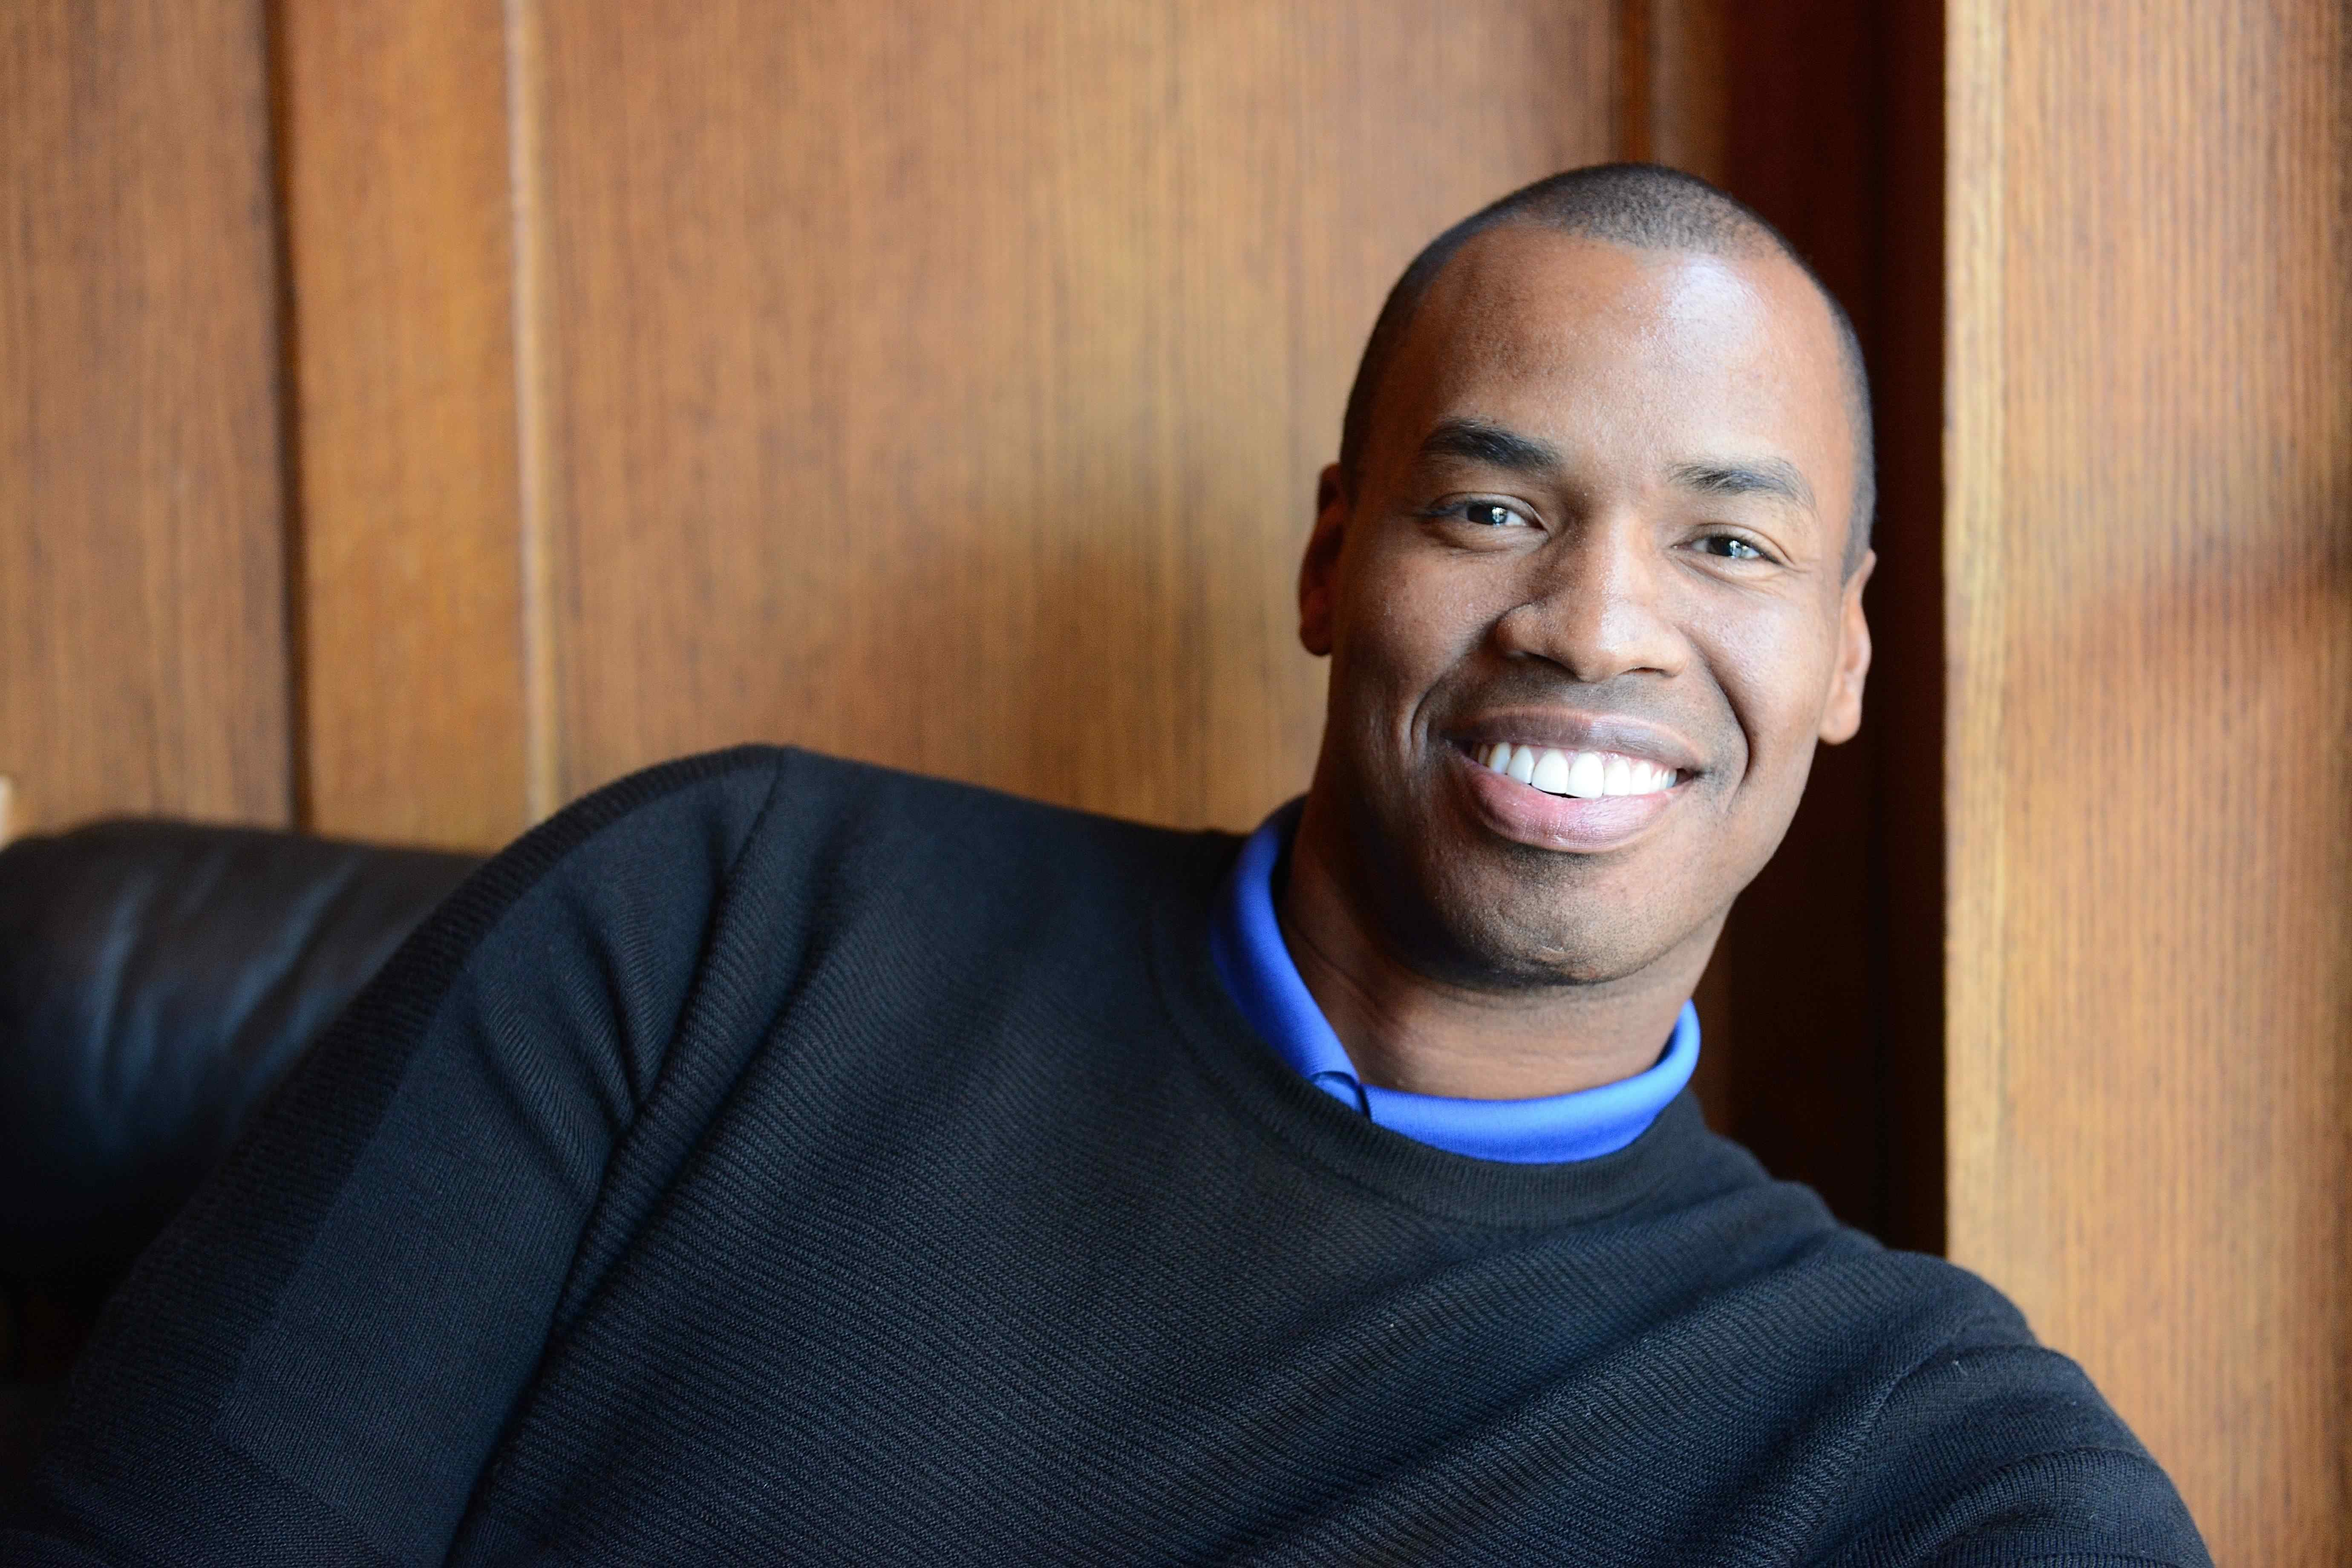 Jason Collins Invited to First Lady's Box at SOTU